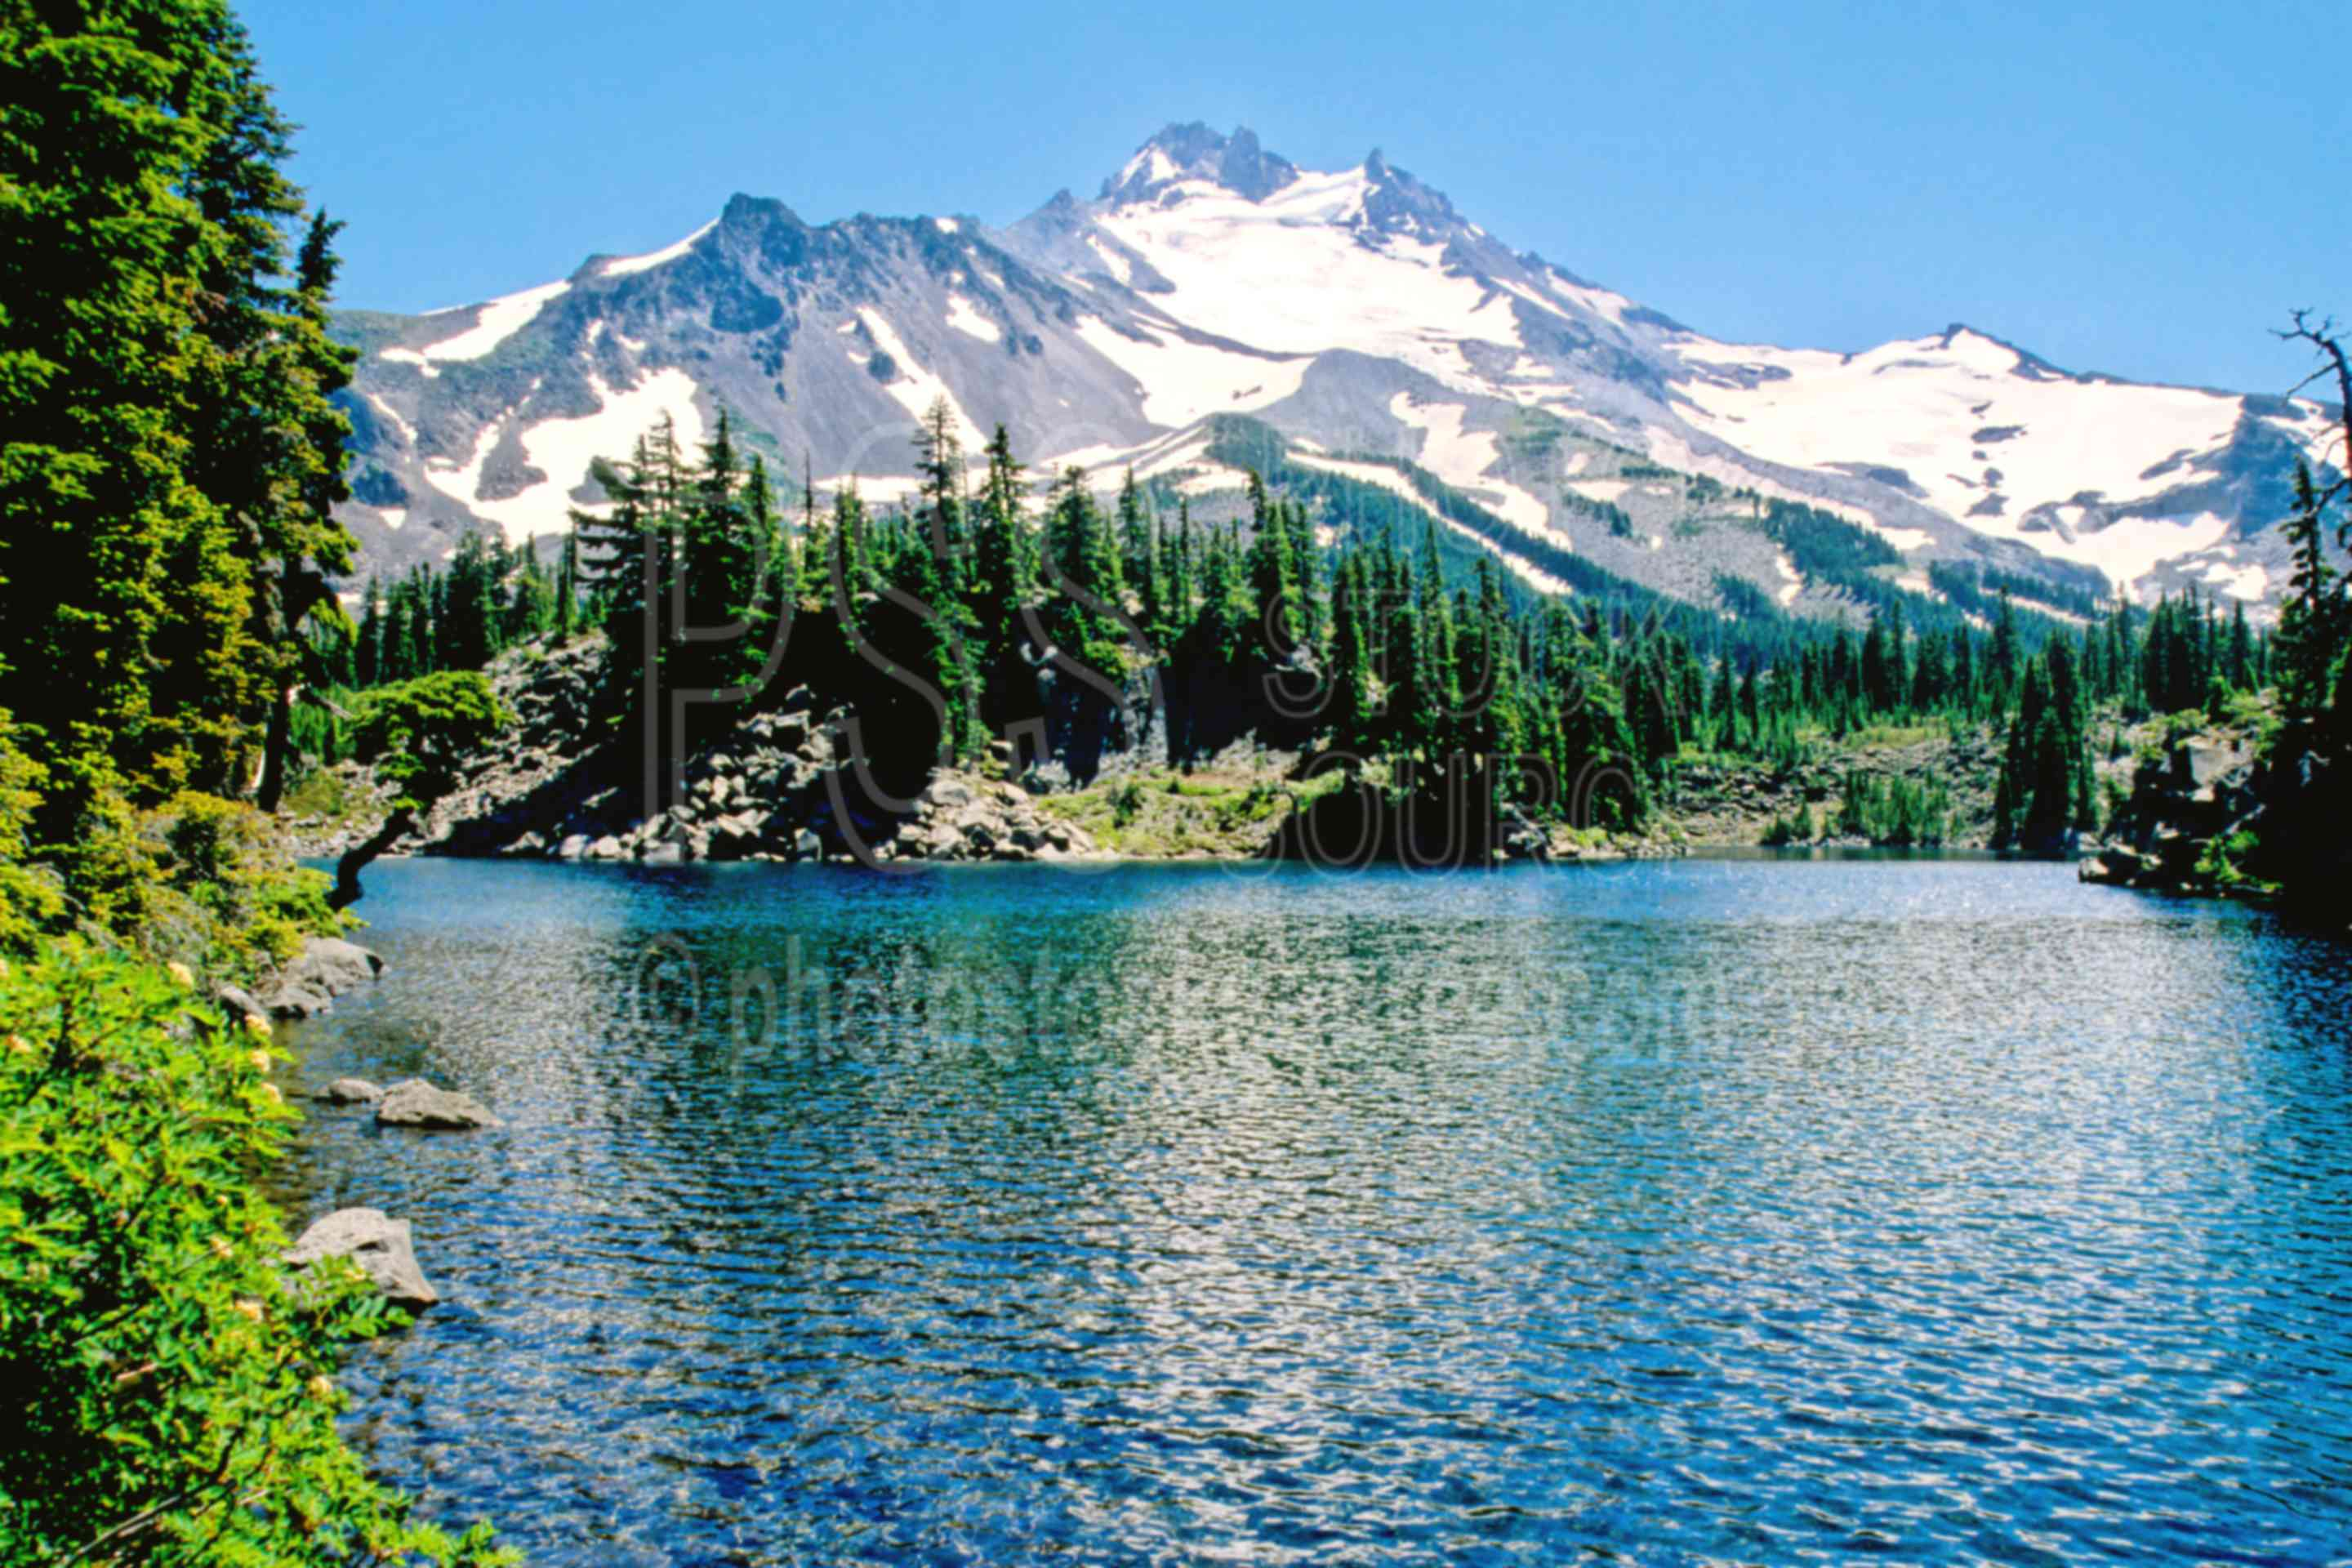 Mt. Jefferson, Bays Lake,jeff park,bays lake,lake,mount,usas,lakes rivers,mountains